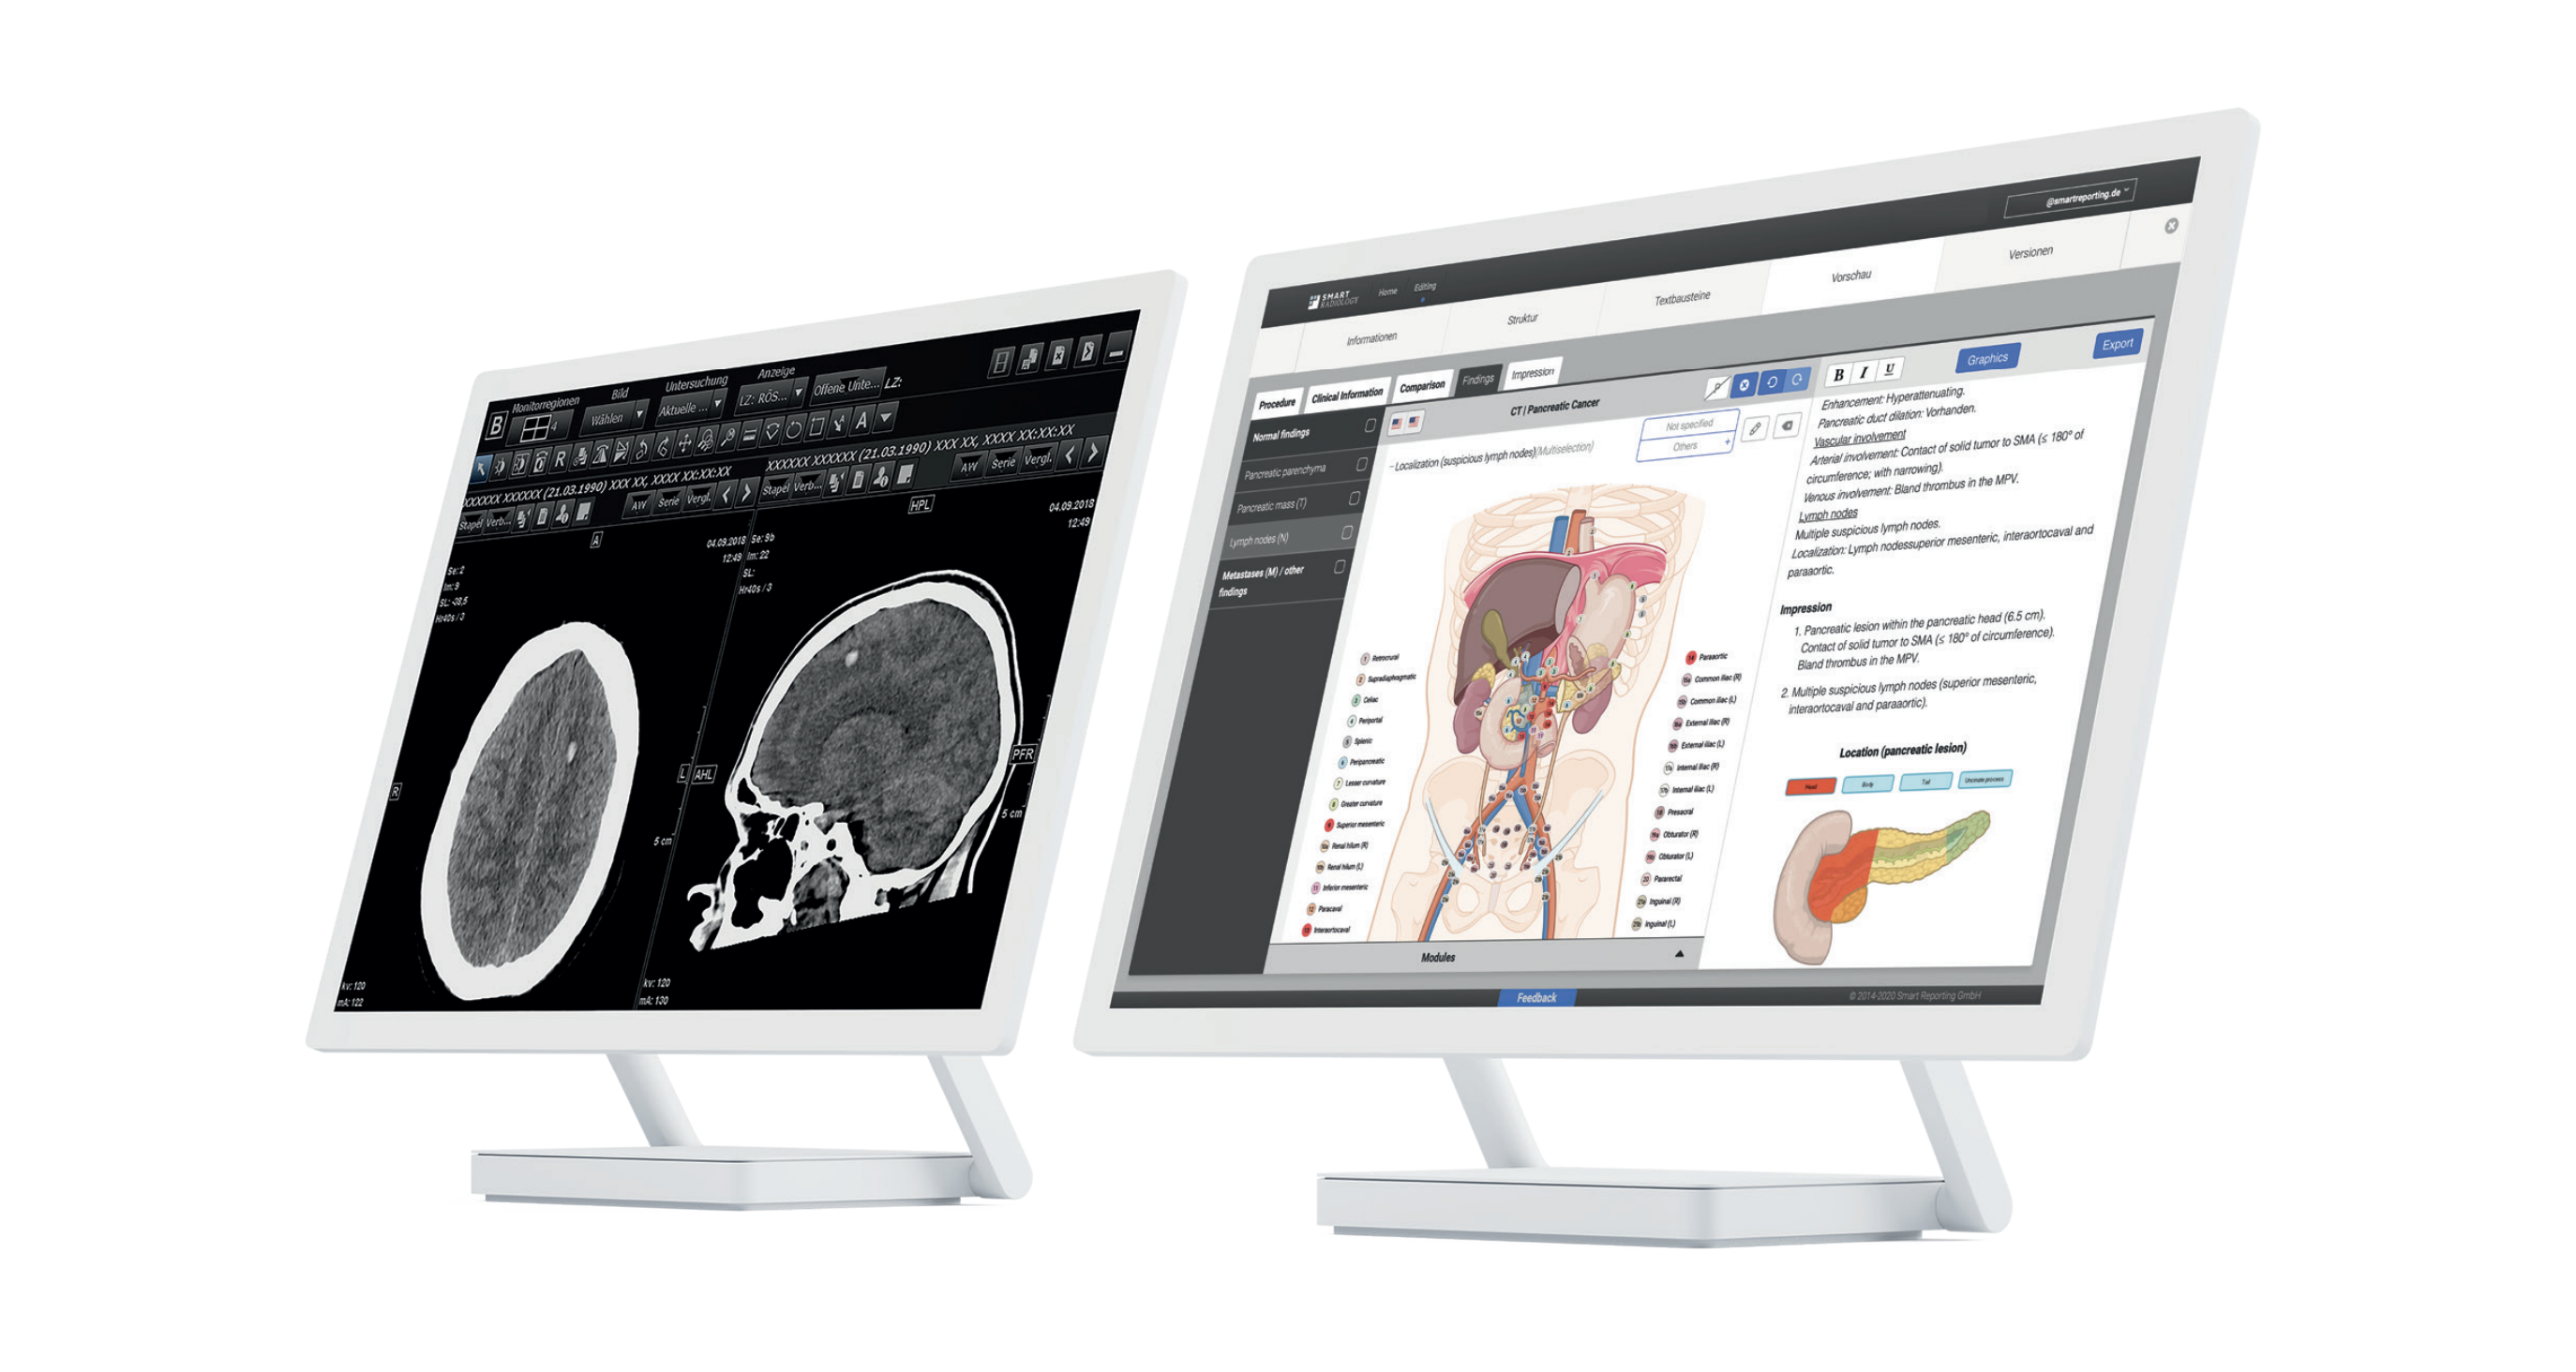 2 Screens. One Screen with MRT Image of the head, other screen with sketch elements of abdomen